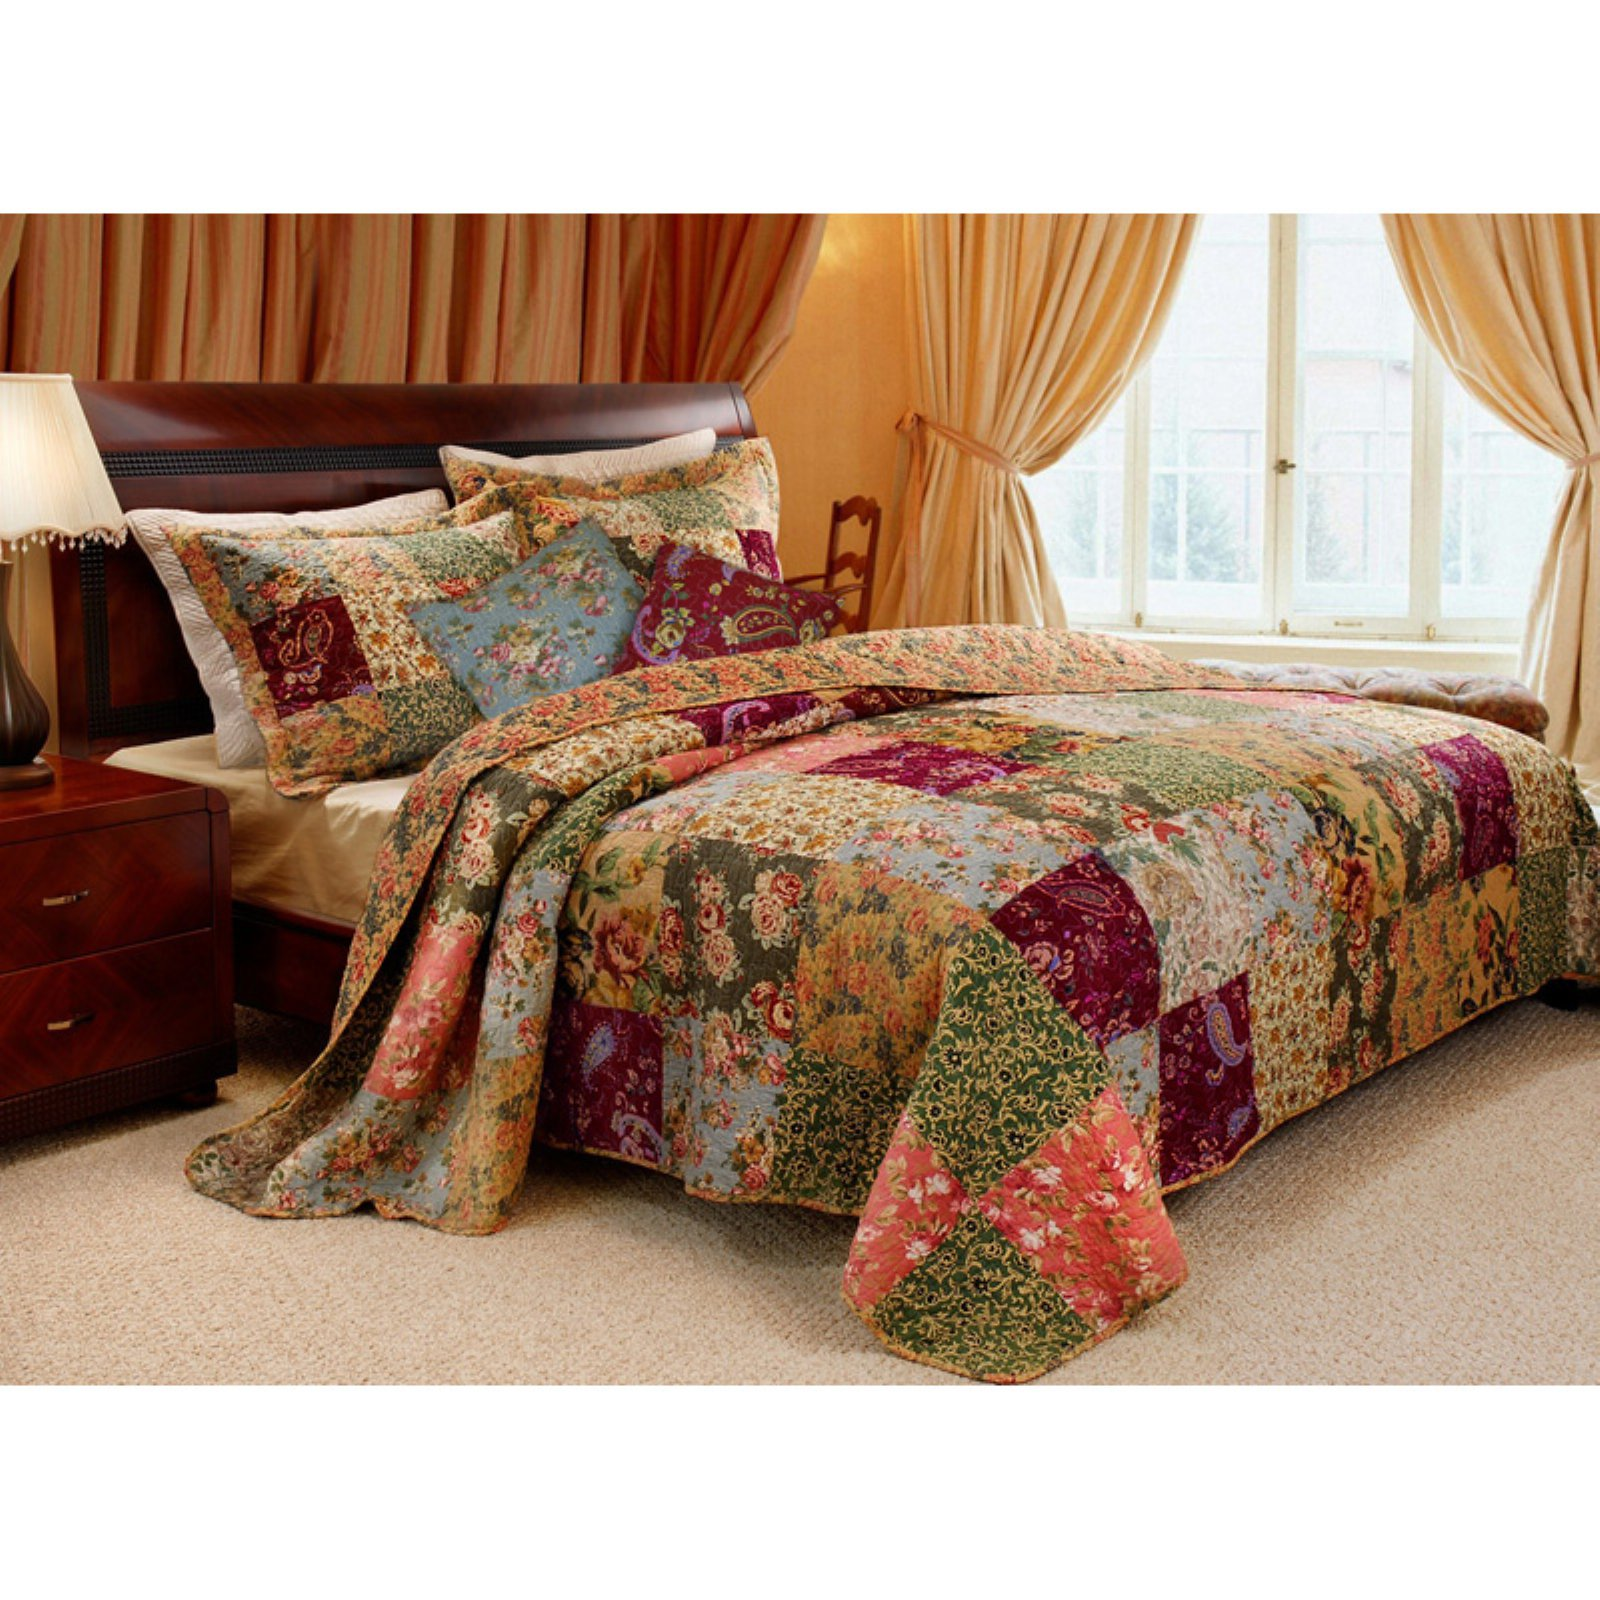 Greenland Home Fashions Antique Chic Quilt Set Includes Bonus 16 in. Pillow by Greenland Home Fashions